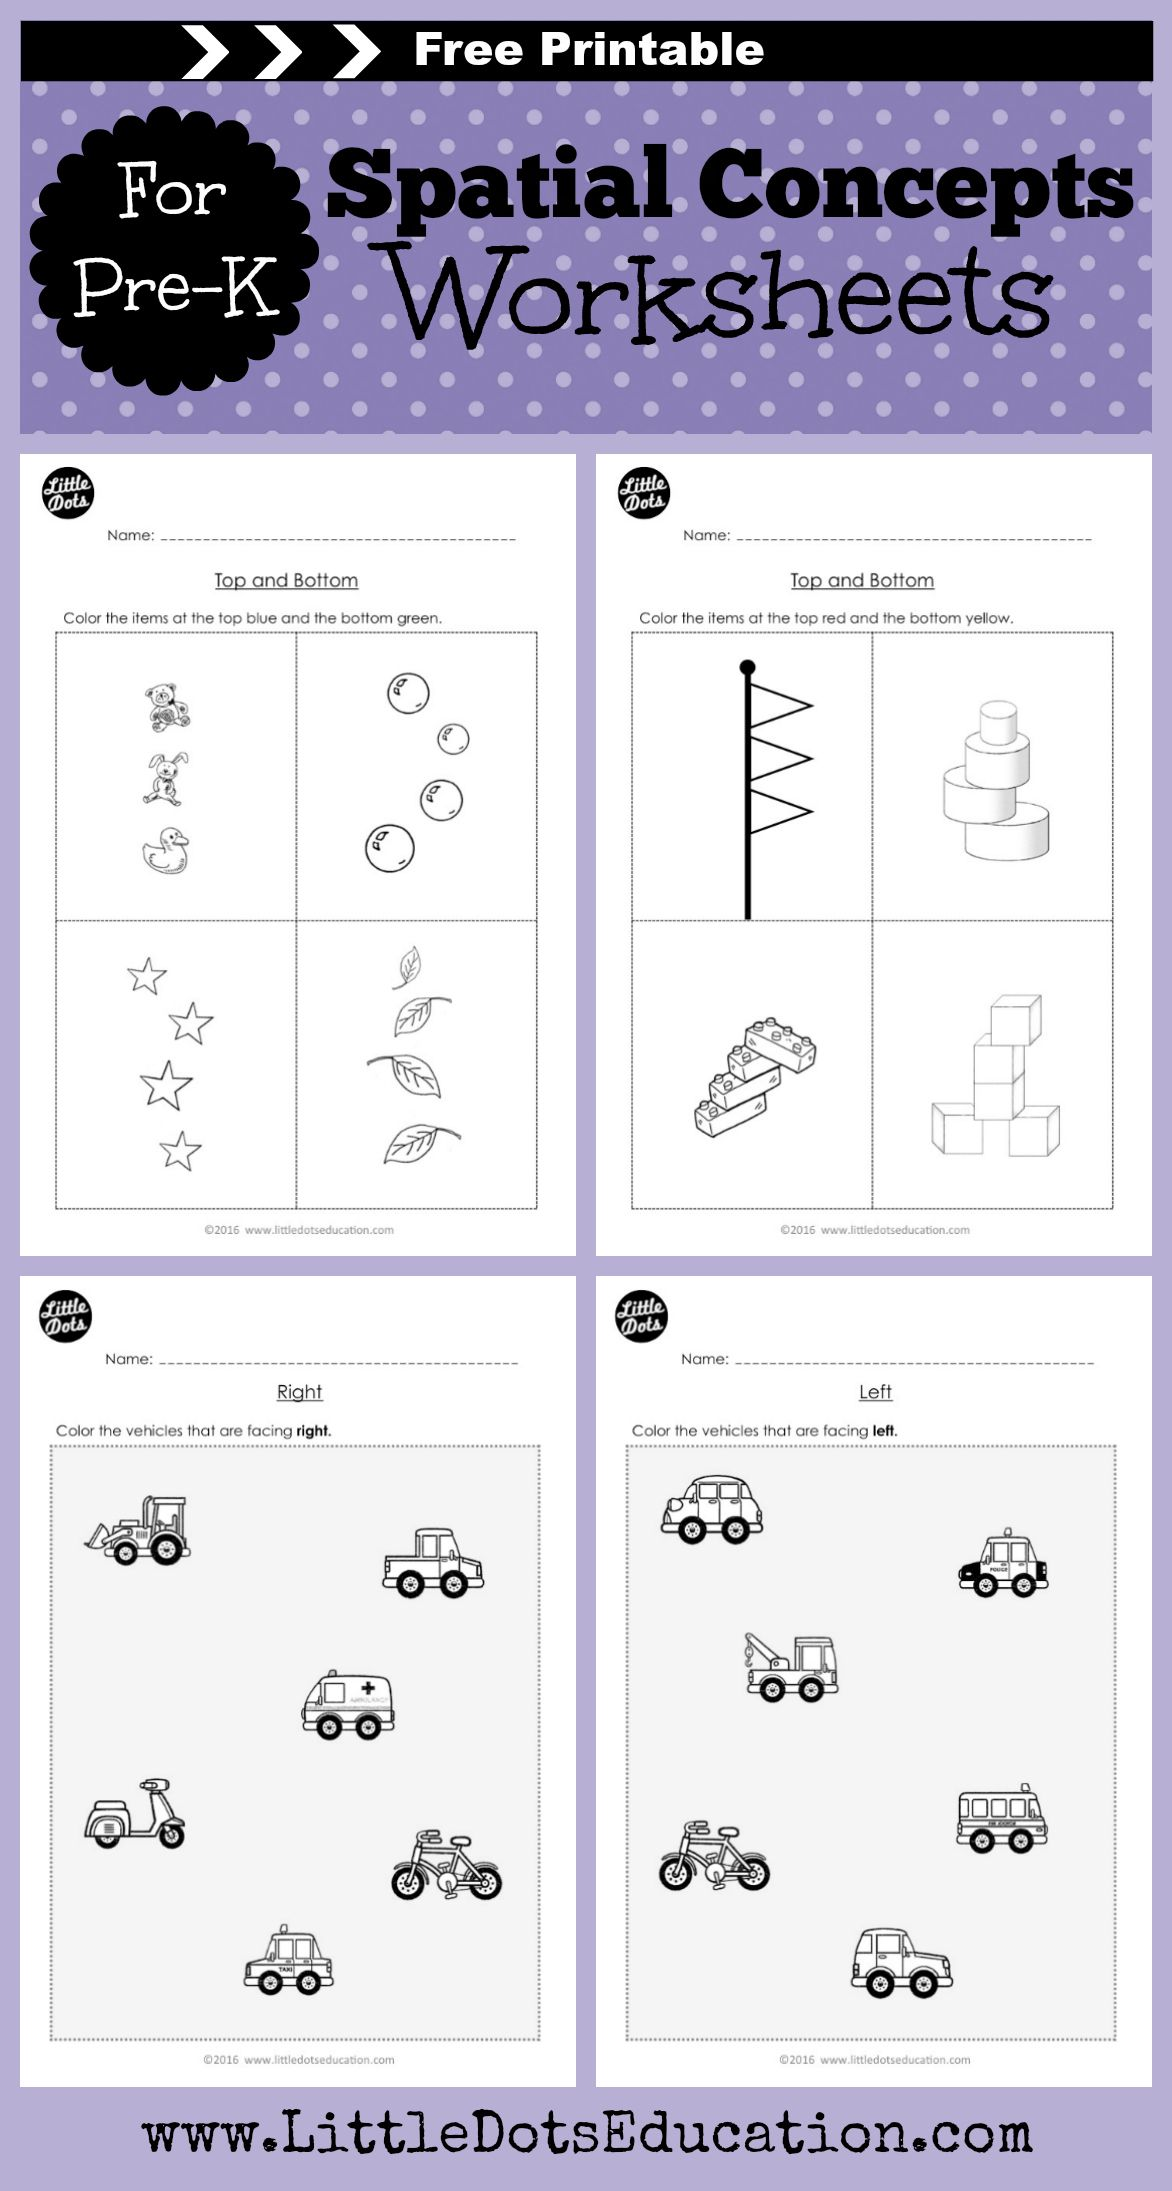 Pre K Spatial Concepts Worksheets And Activities